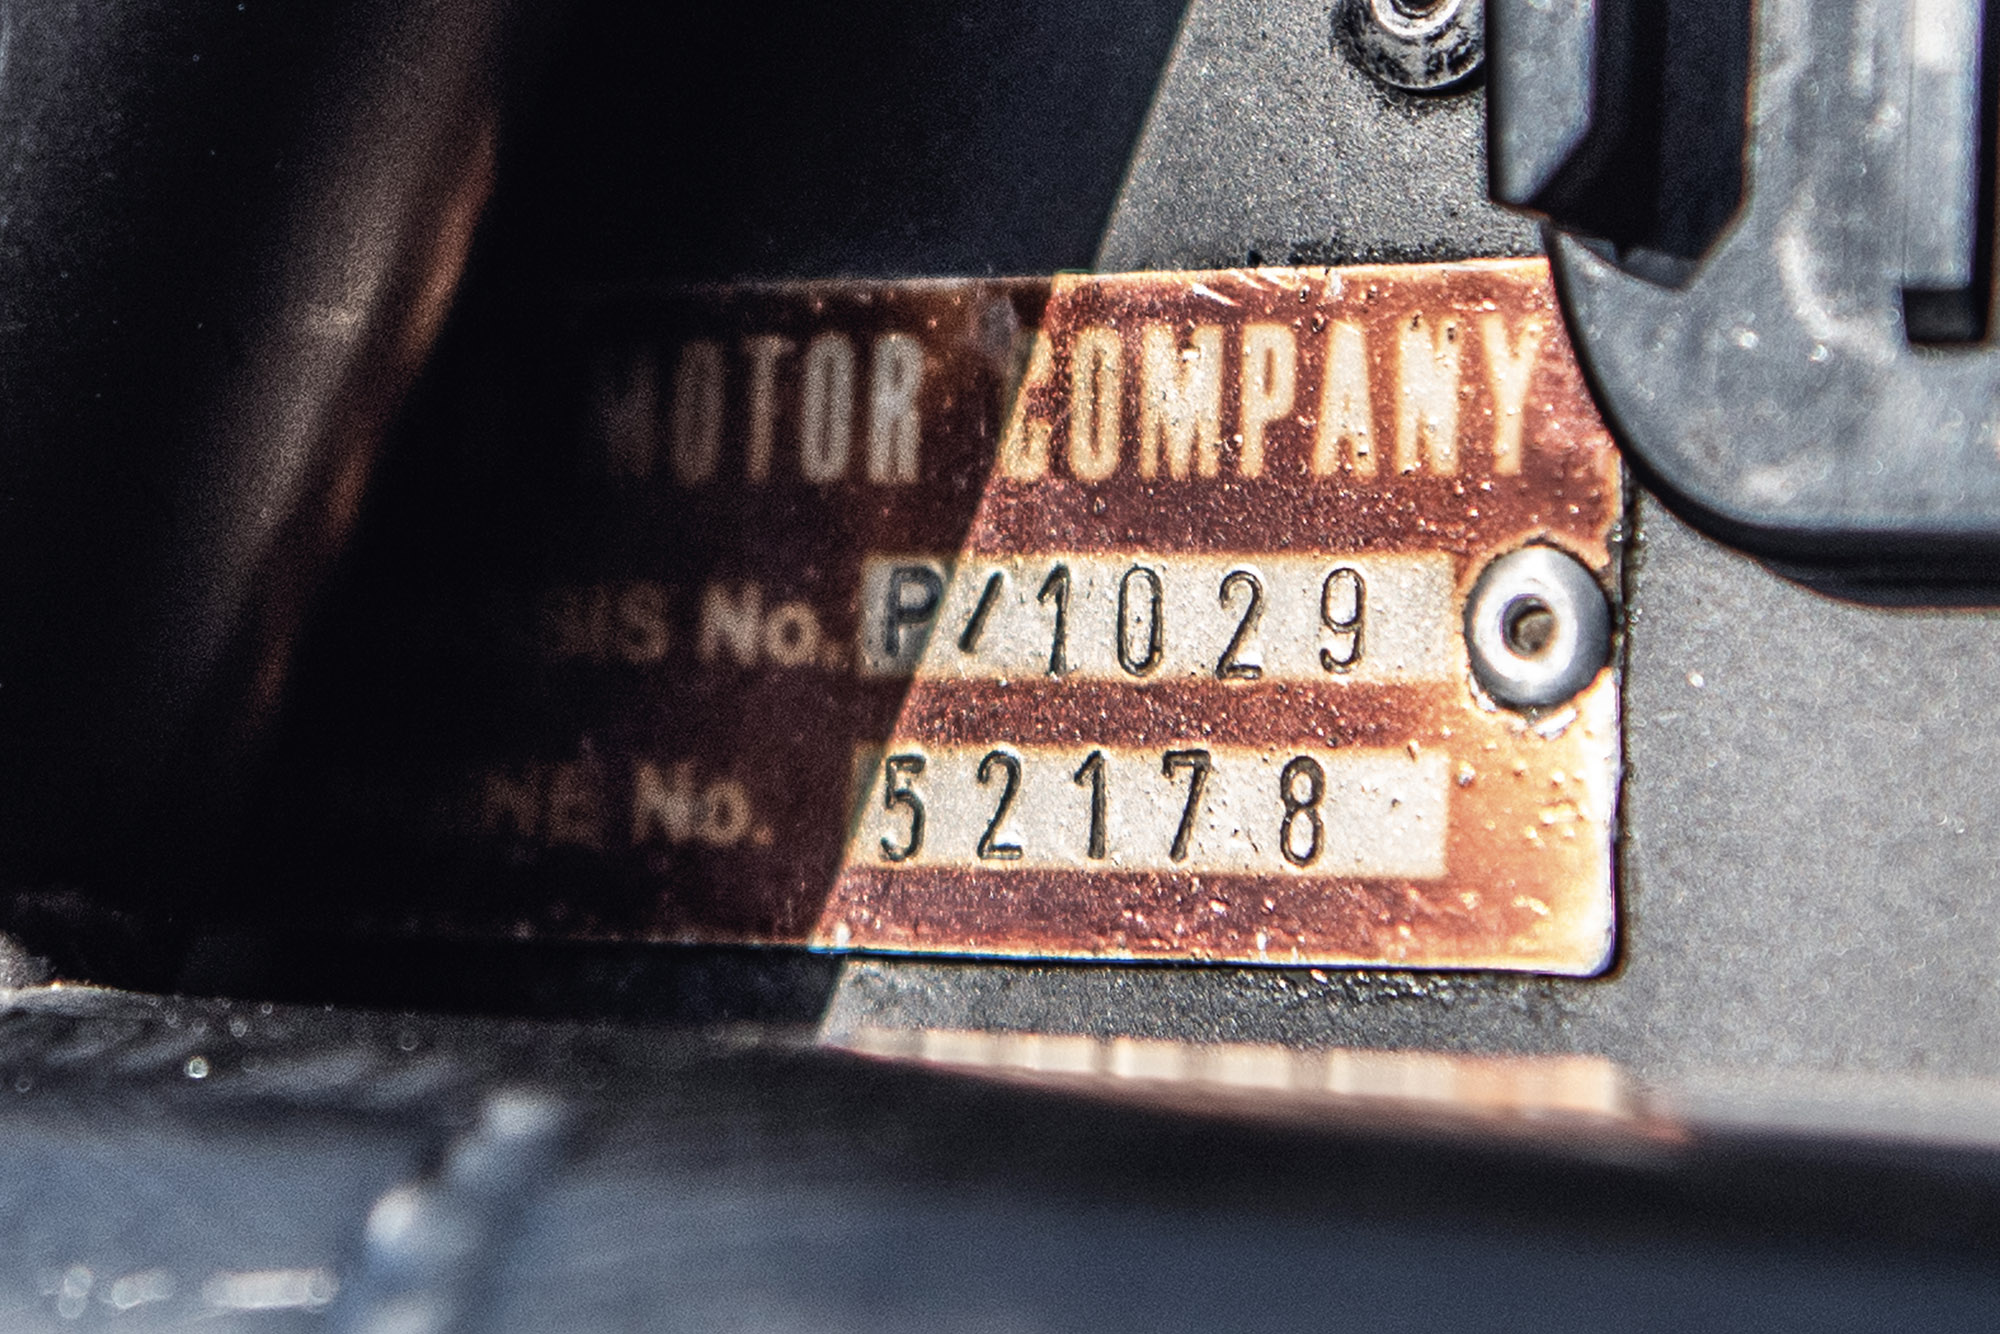 Ford Gt40 plate